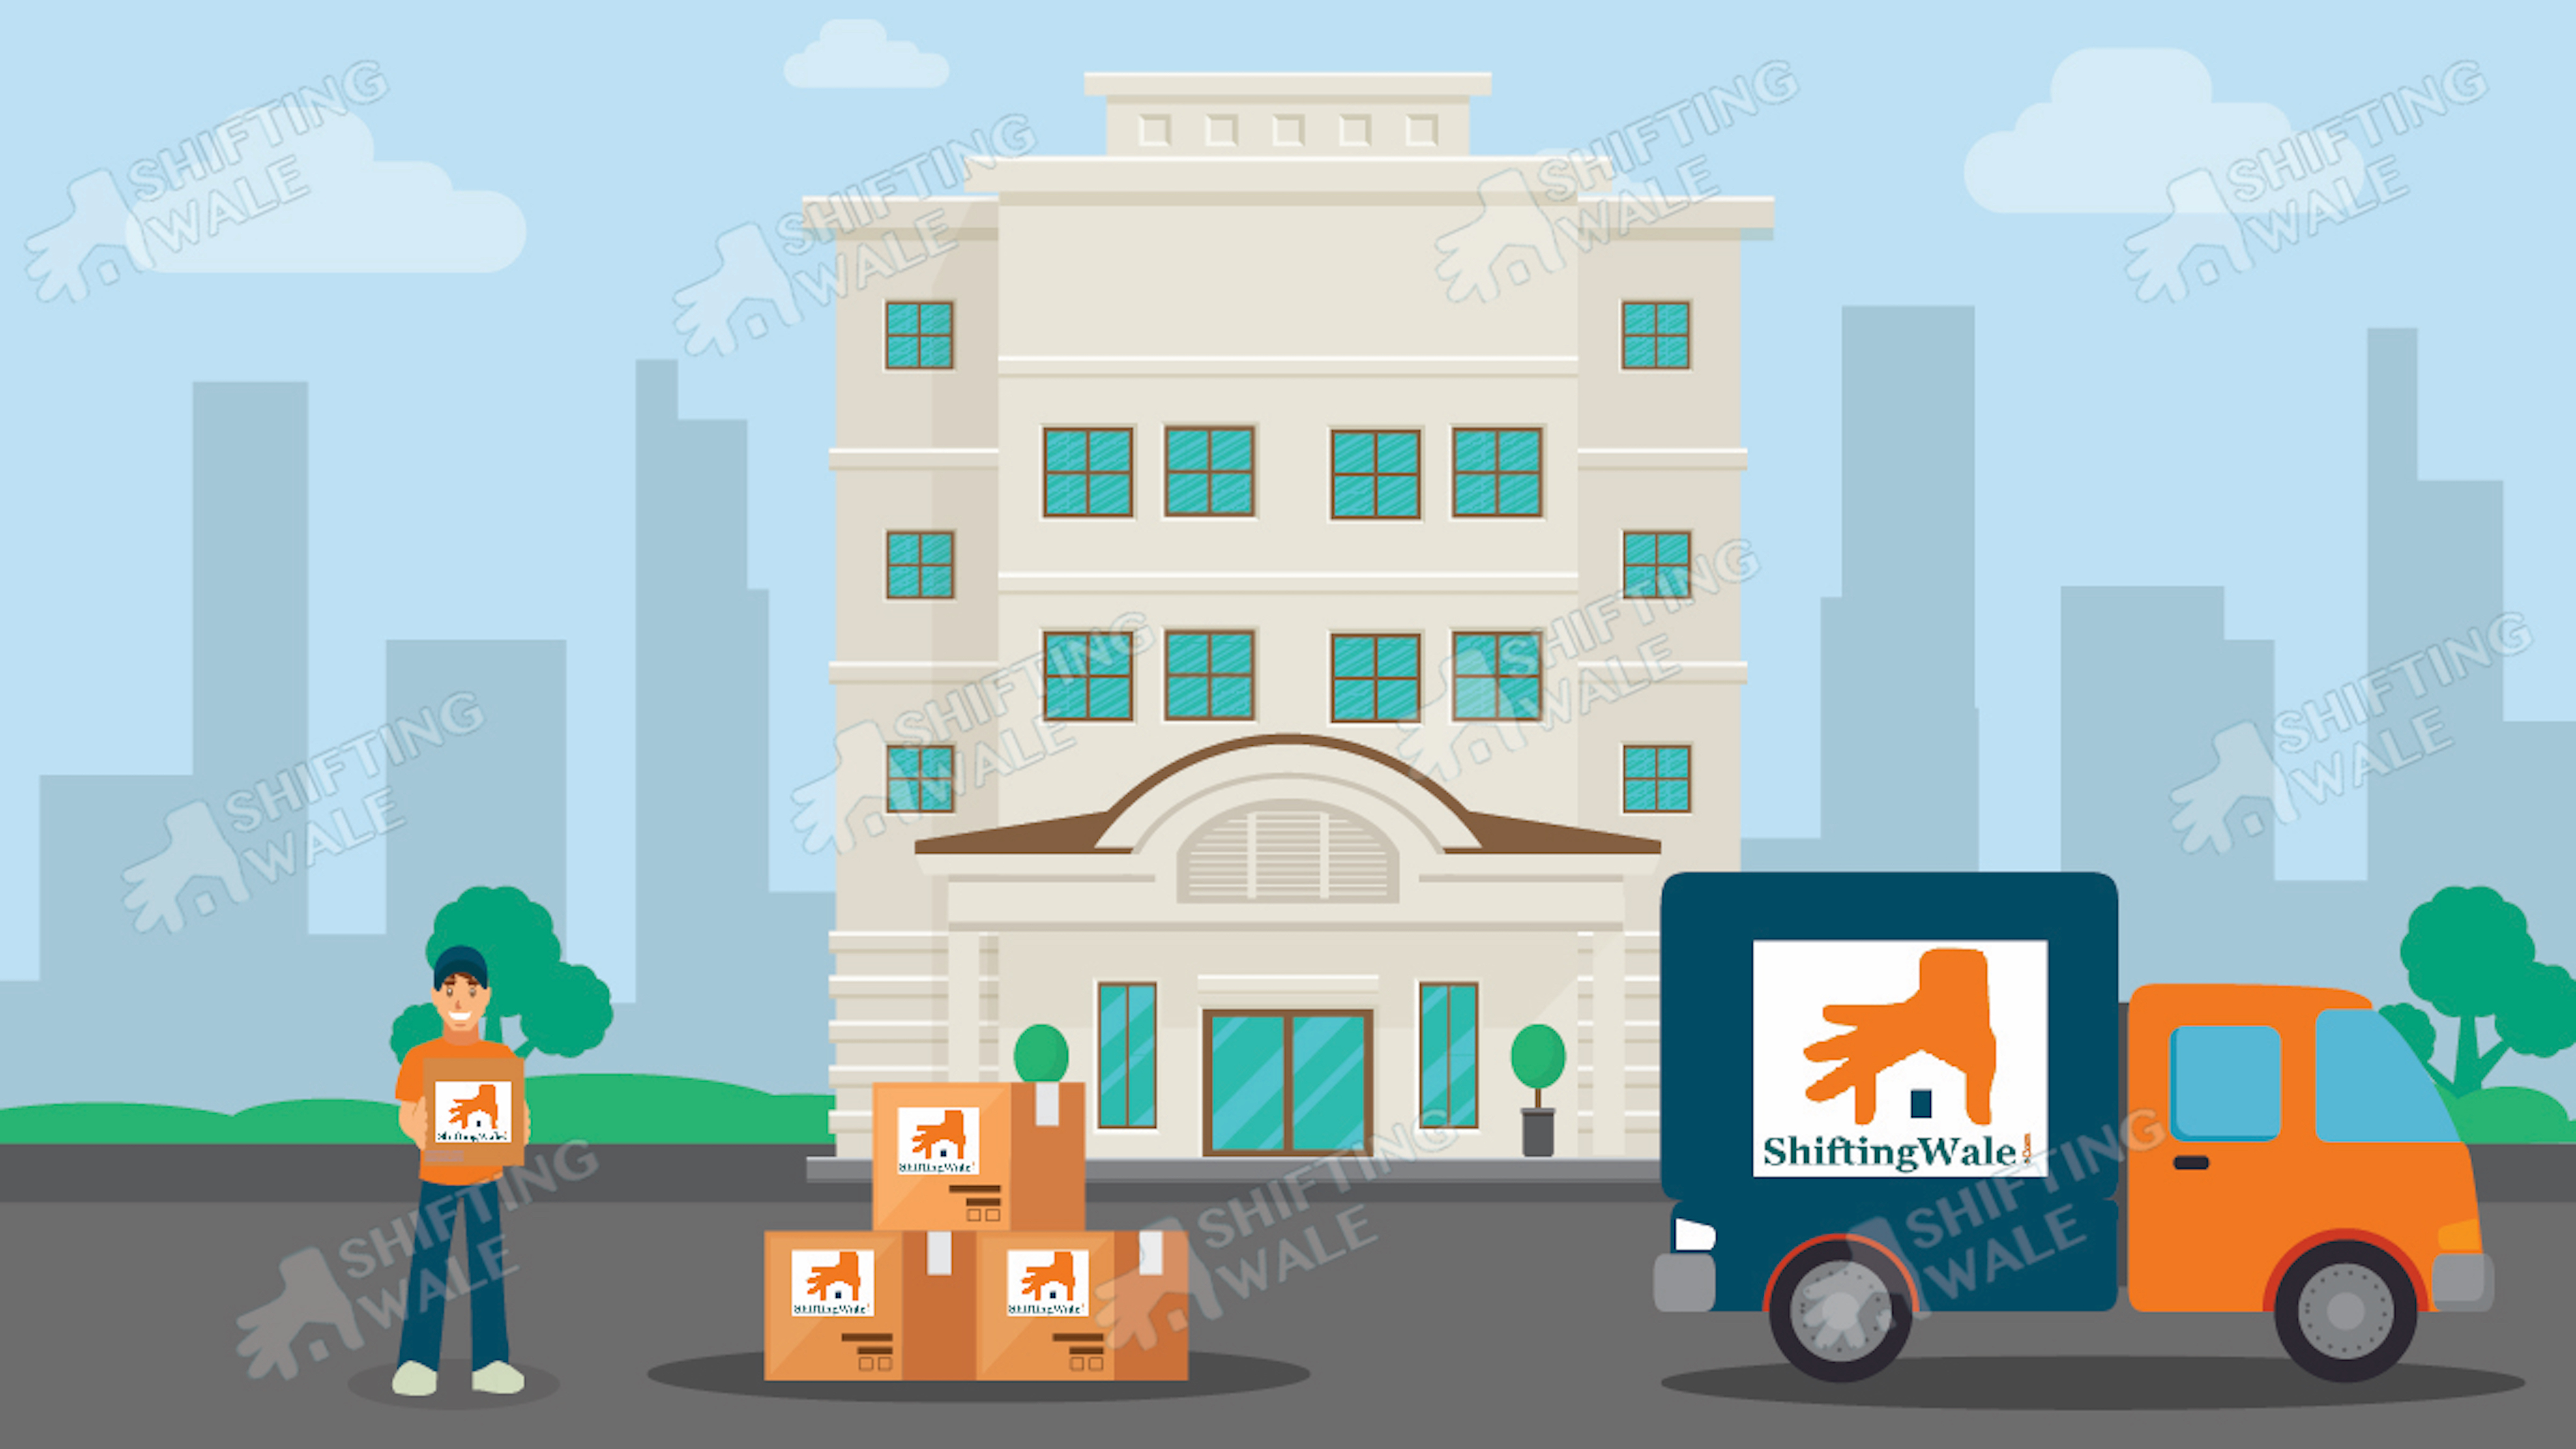 Lucknow to Patna Trusted Movers & Packers Get Complete Relocation